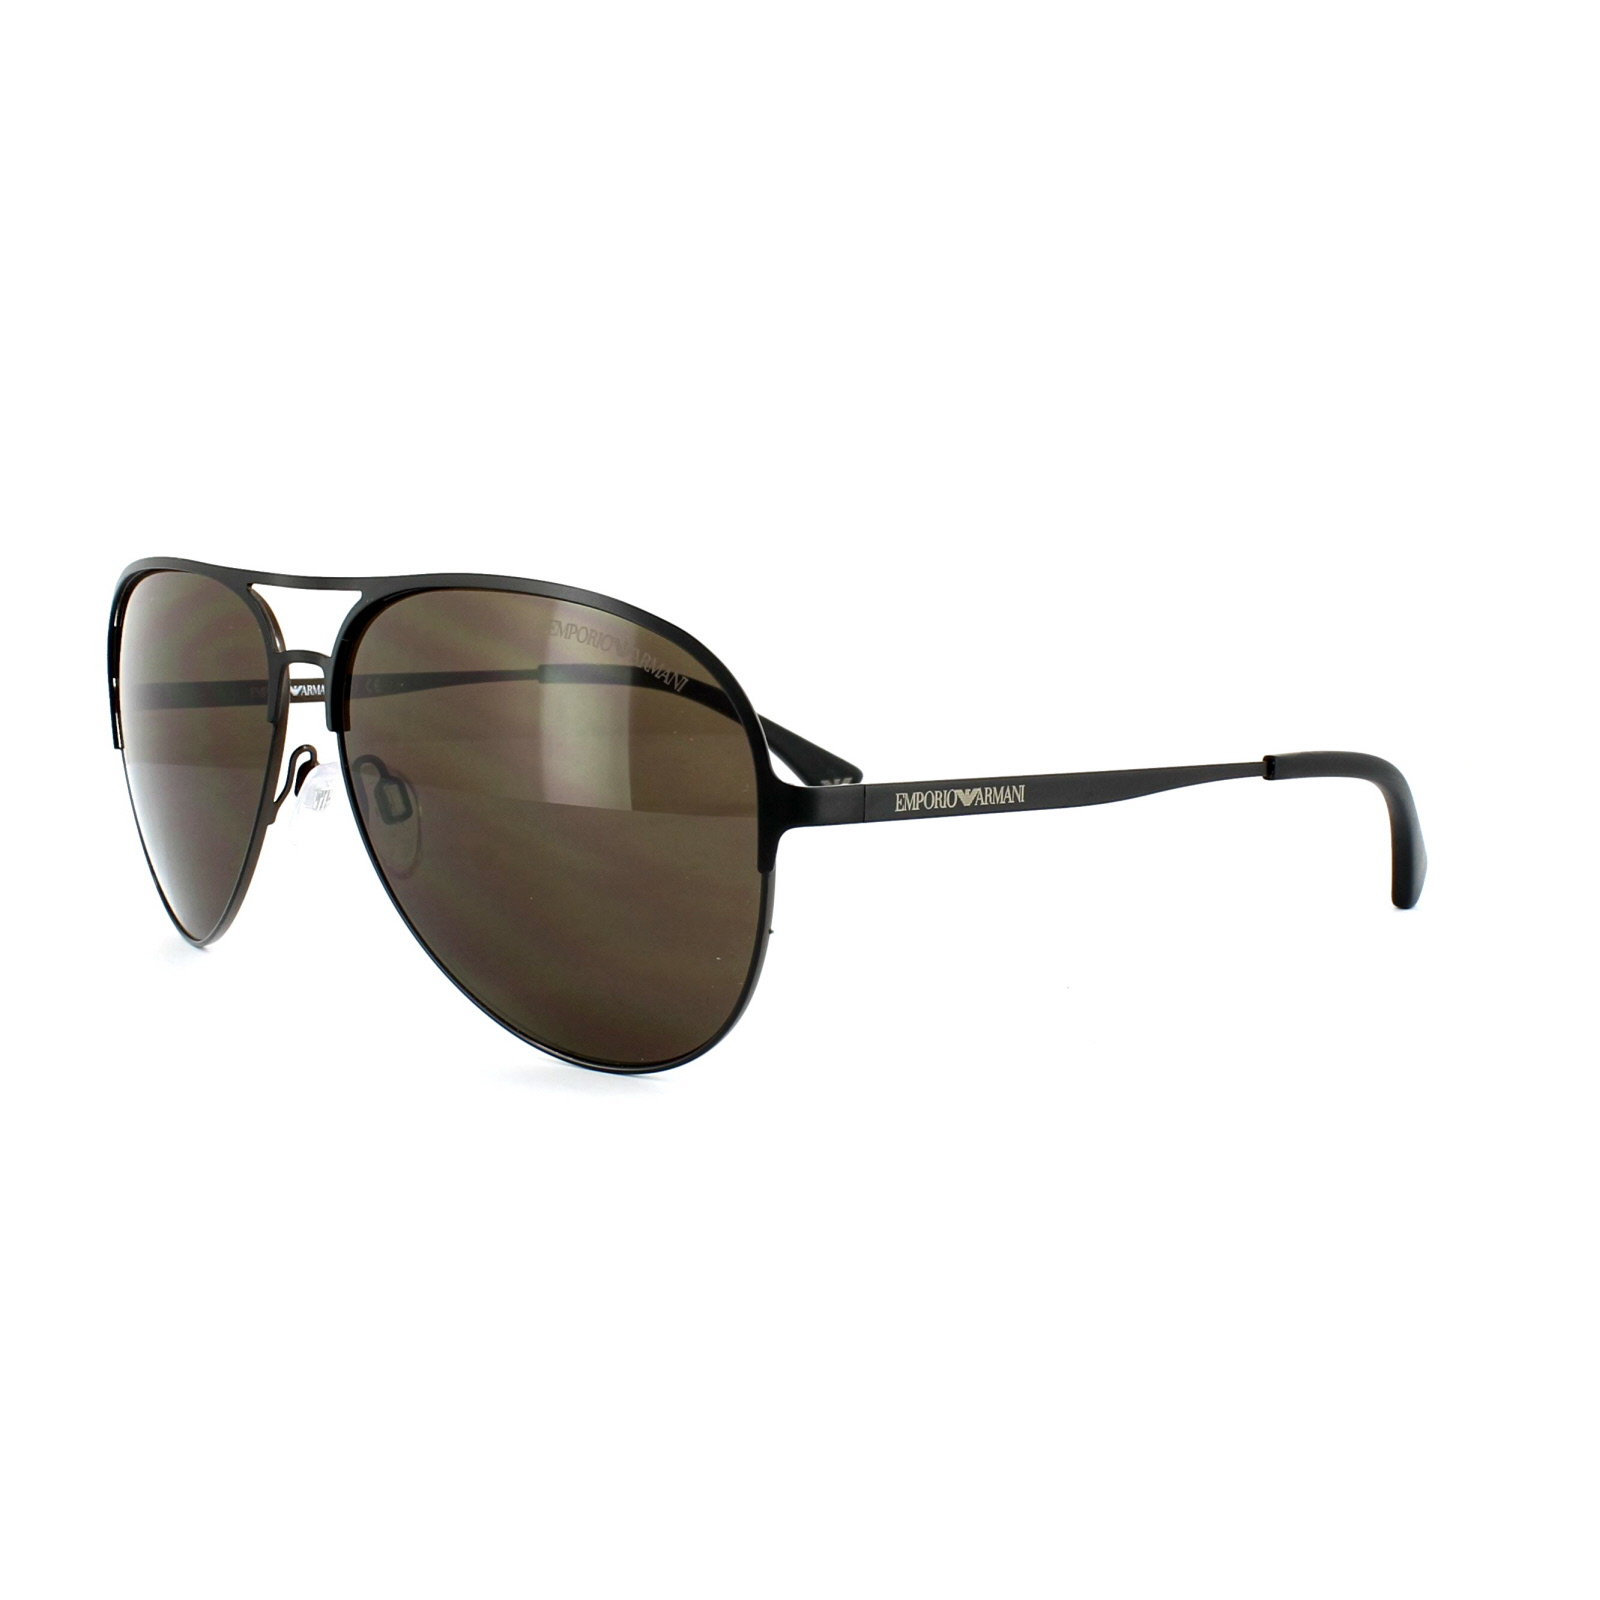 9a6165090a Sentinel Emporio Armani Sunglasses 2032 3127 73 Matt Black Brown Brown